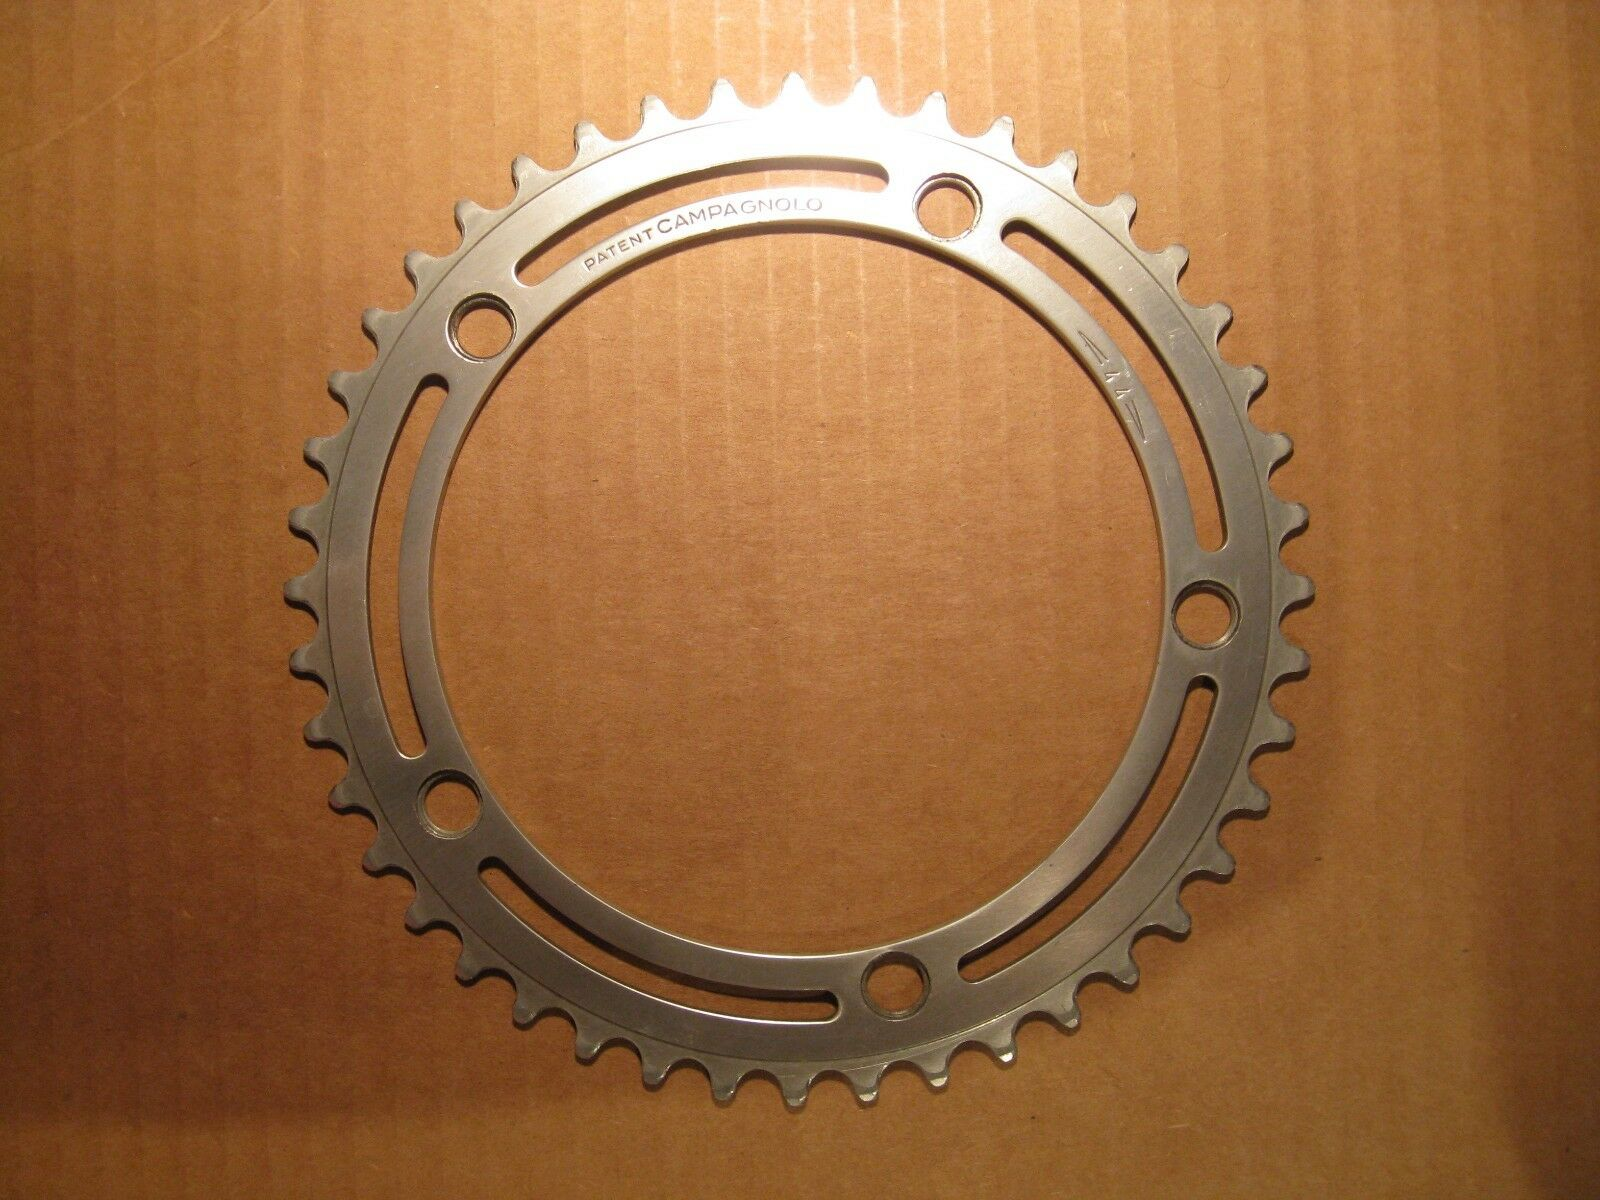 Campagnolo  44T Nuovo Record Road Chainring Vintage 144BCD Pre-Owned  cheaper prices